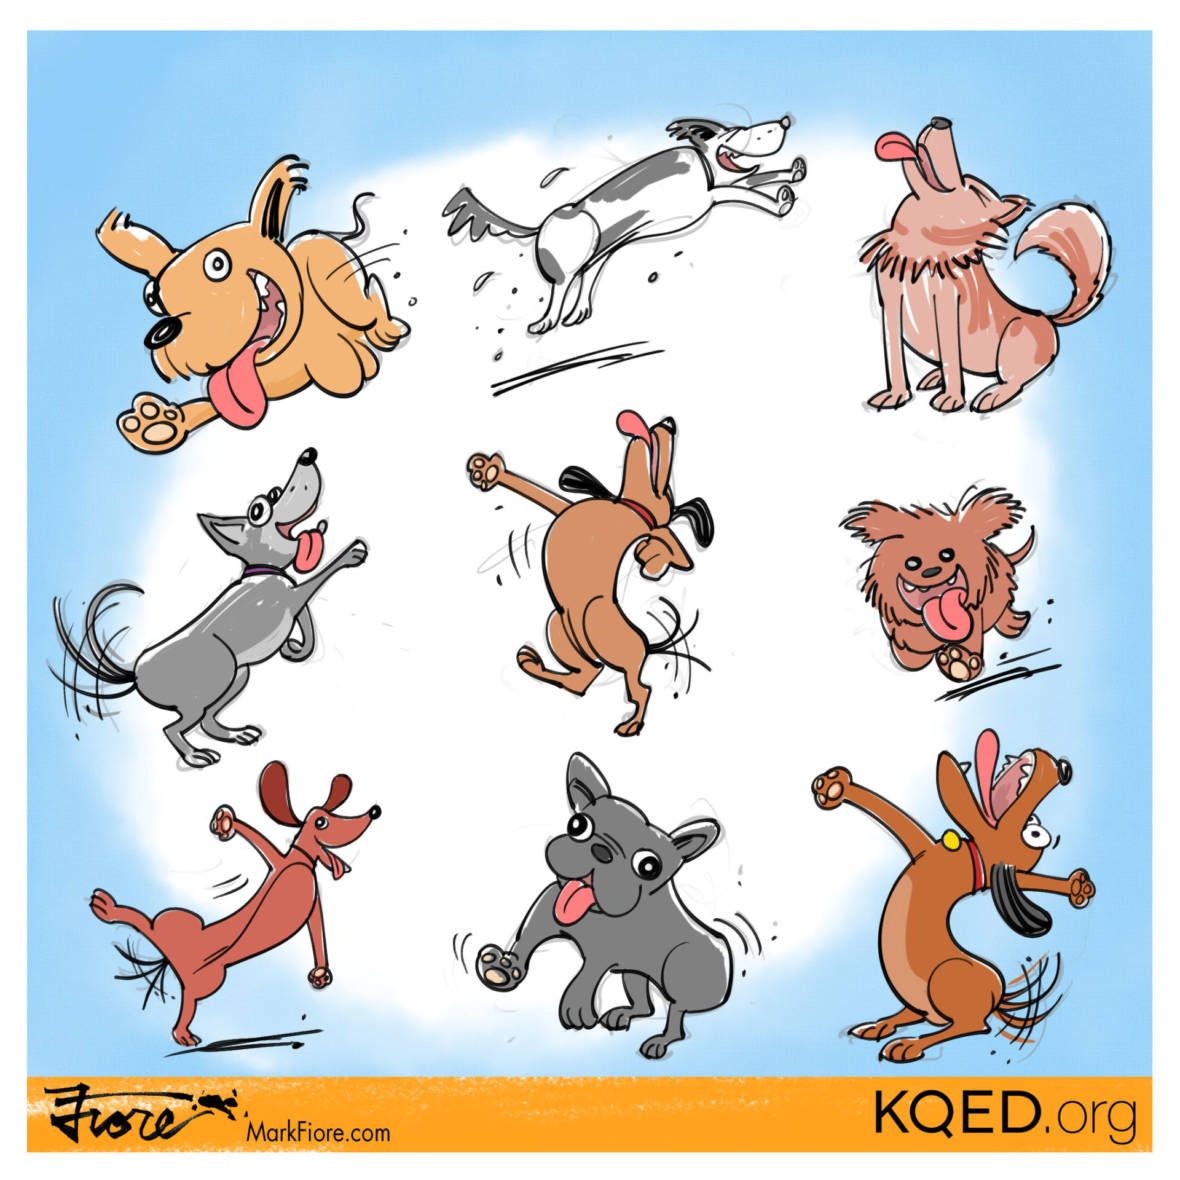 Dogs by Mark Fiore